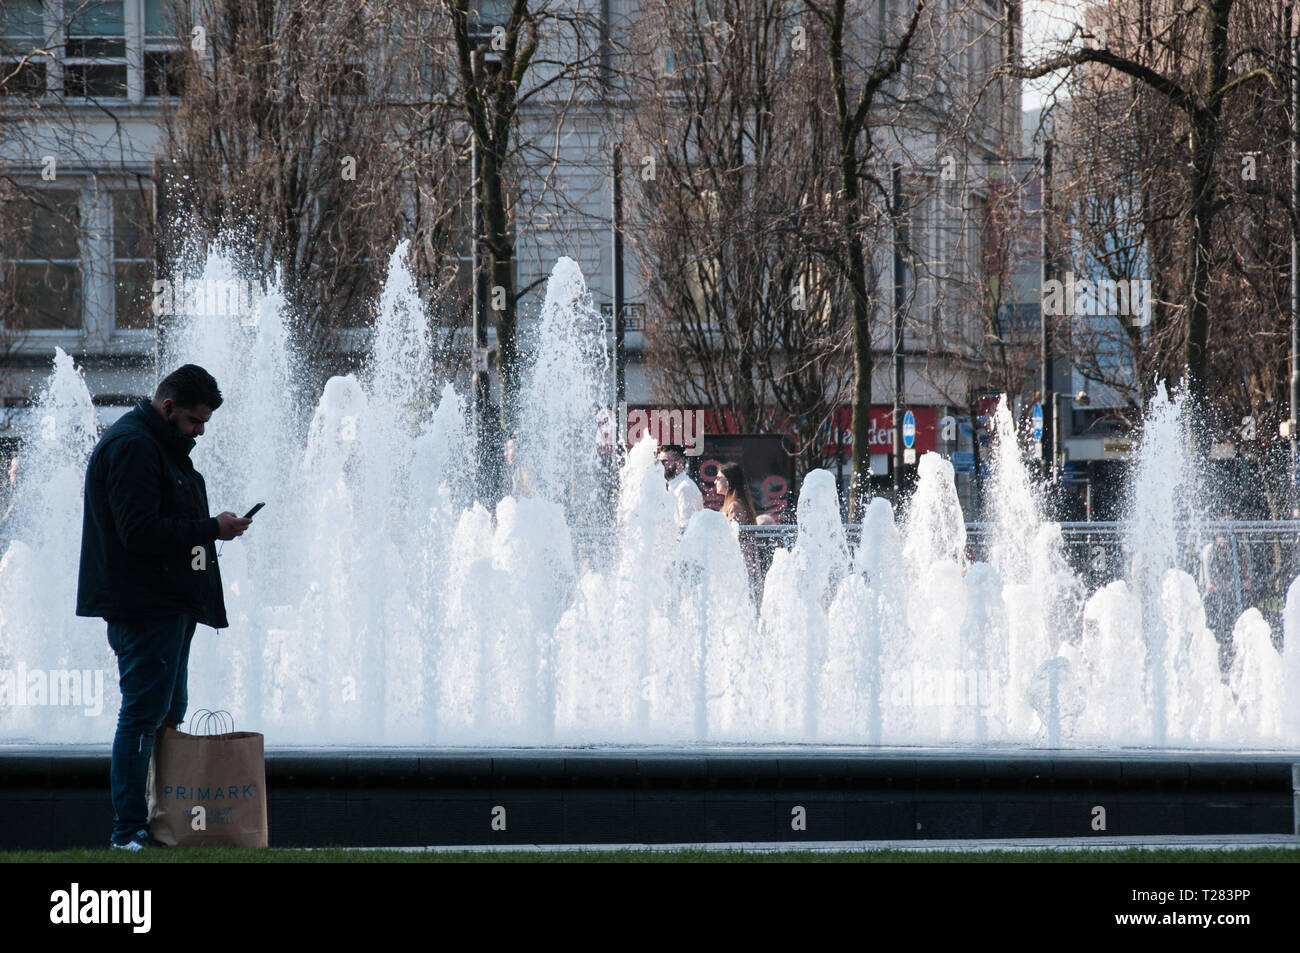 One of a selection of my images of the fountains in Piccadilly Gardens, Manchester - Stock Image